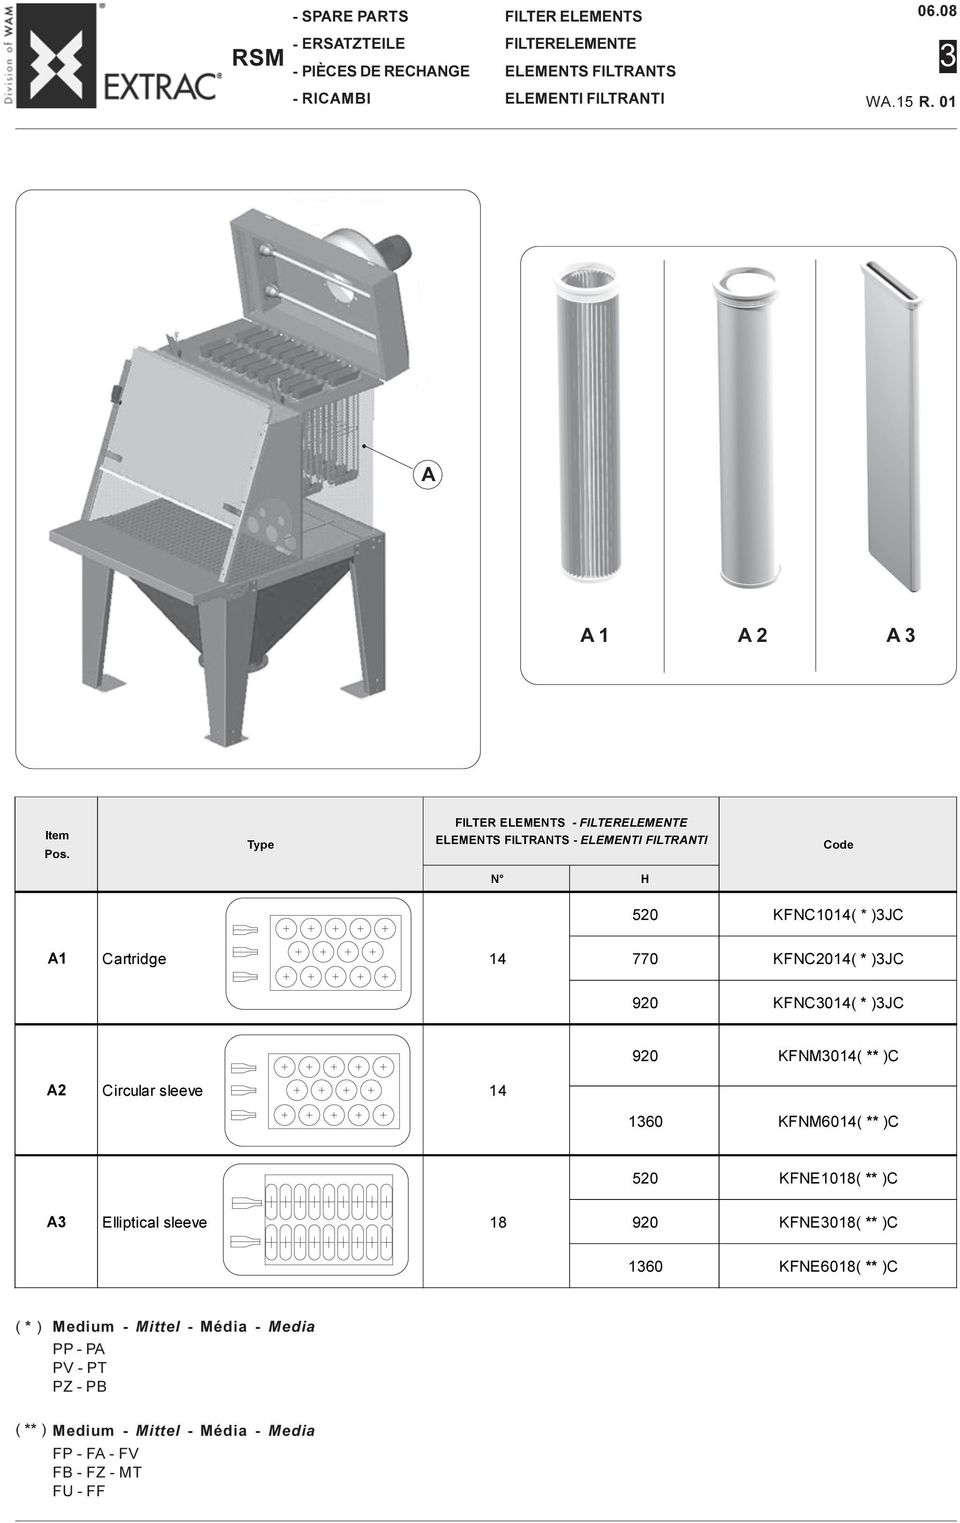 Type FILTER ELEMENTS FILTERELEMENTE ELEMENTS FILTRANTS ELEMENTI FILTRANTI Code N H 520 KFNC1014( * )3JC A1 Cartridge 14 770 KFNC2014( * )3JC 920